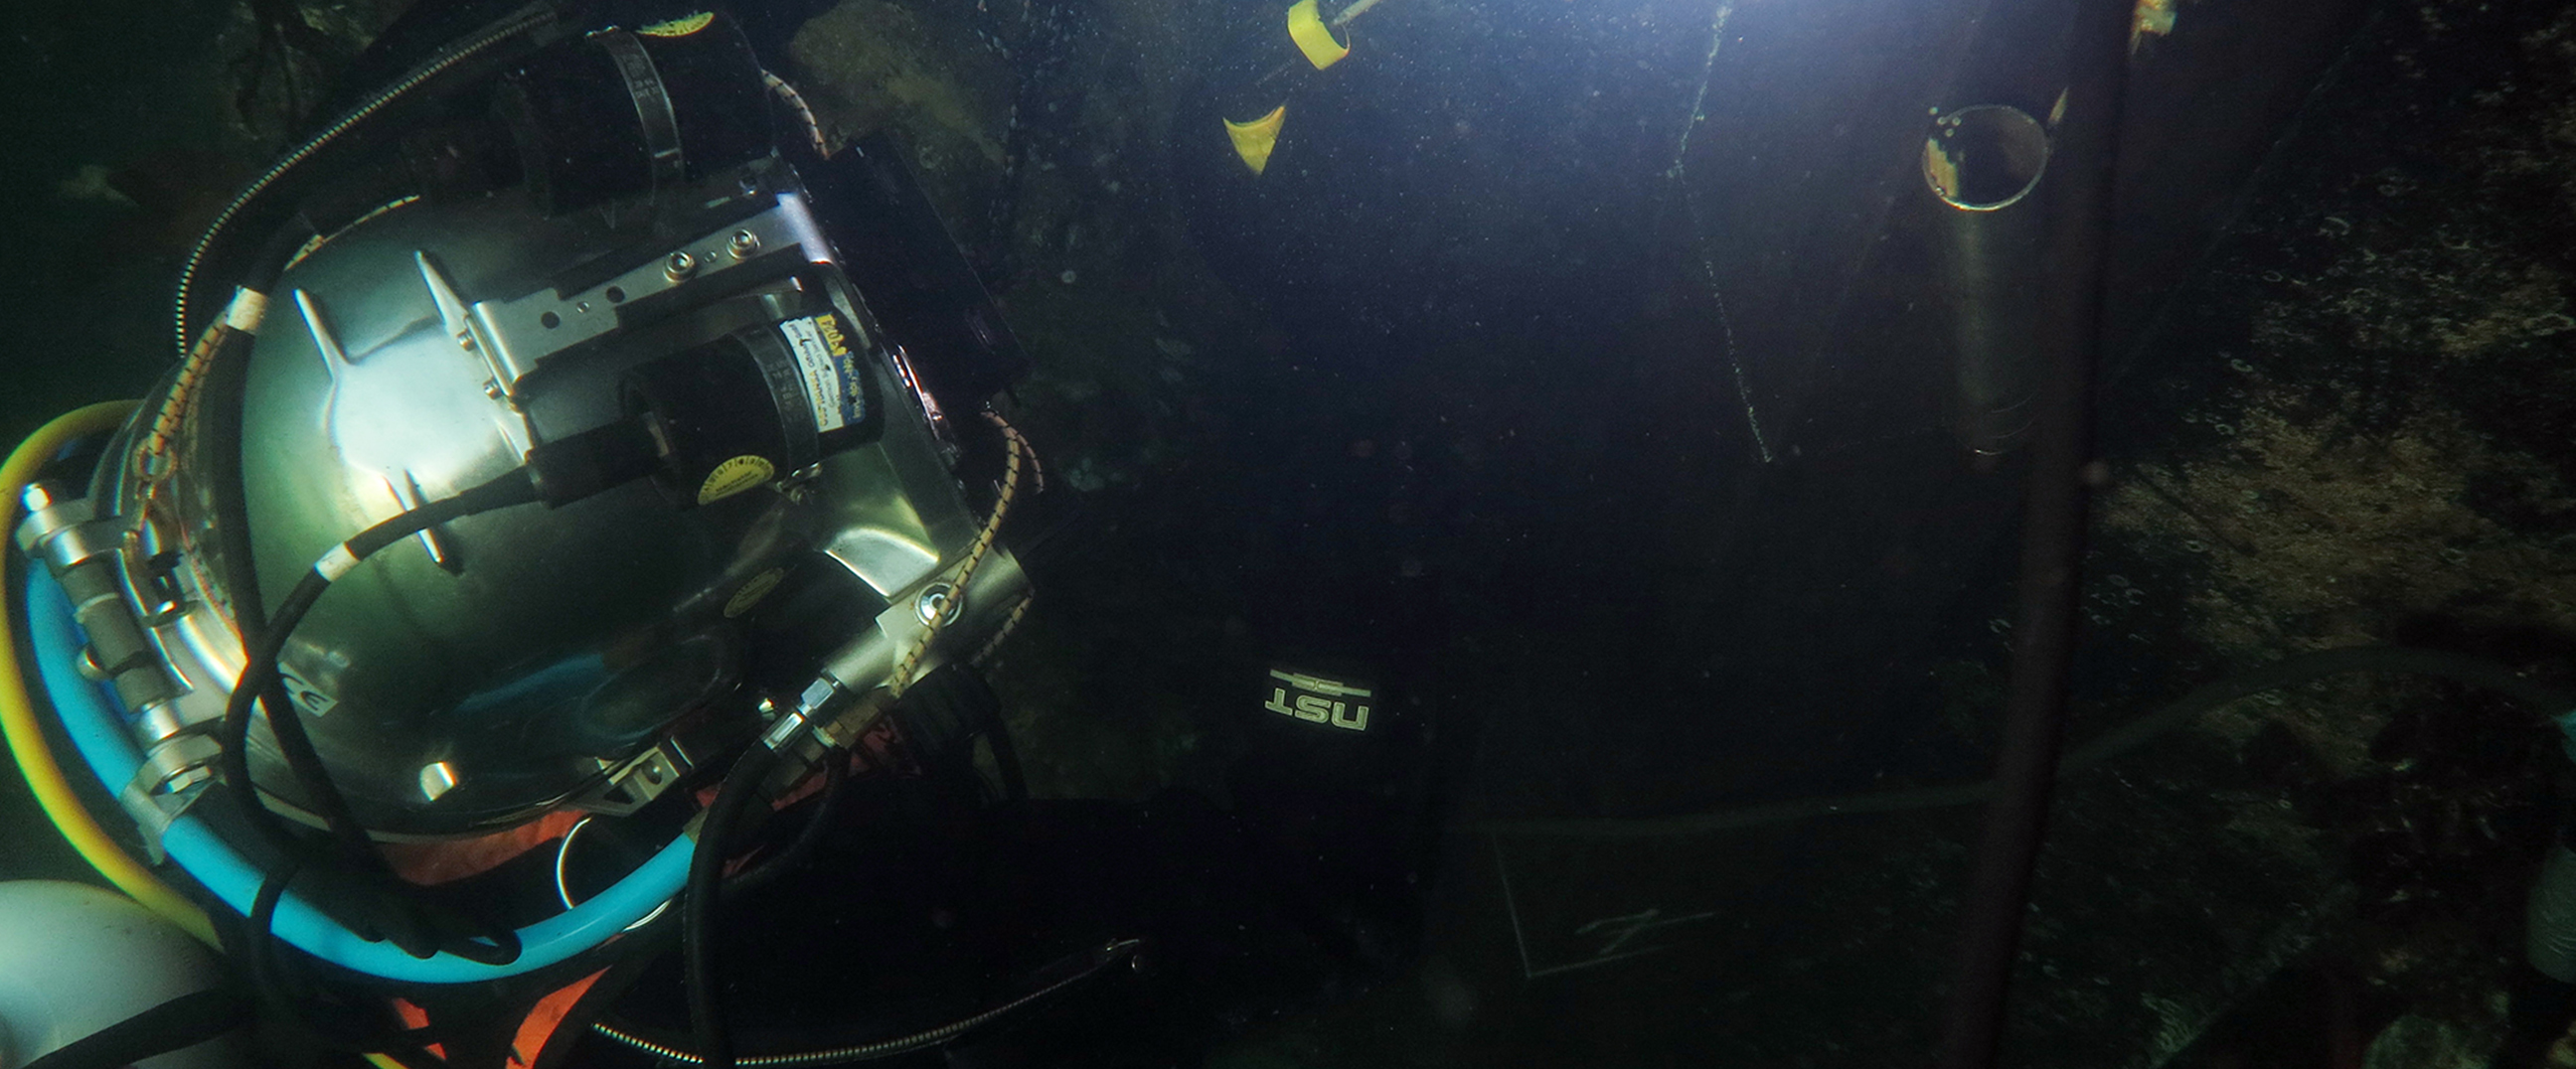 Execution of Inshore and Offshore diving work